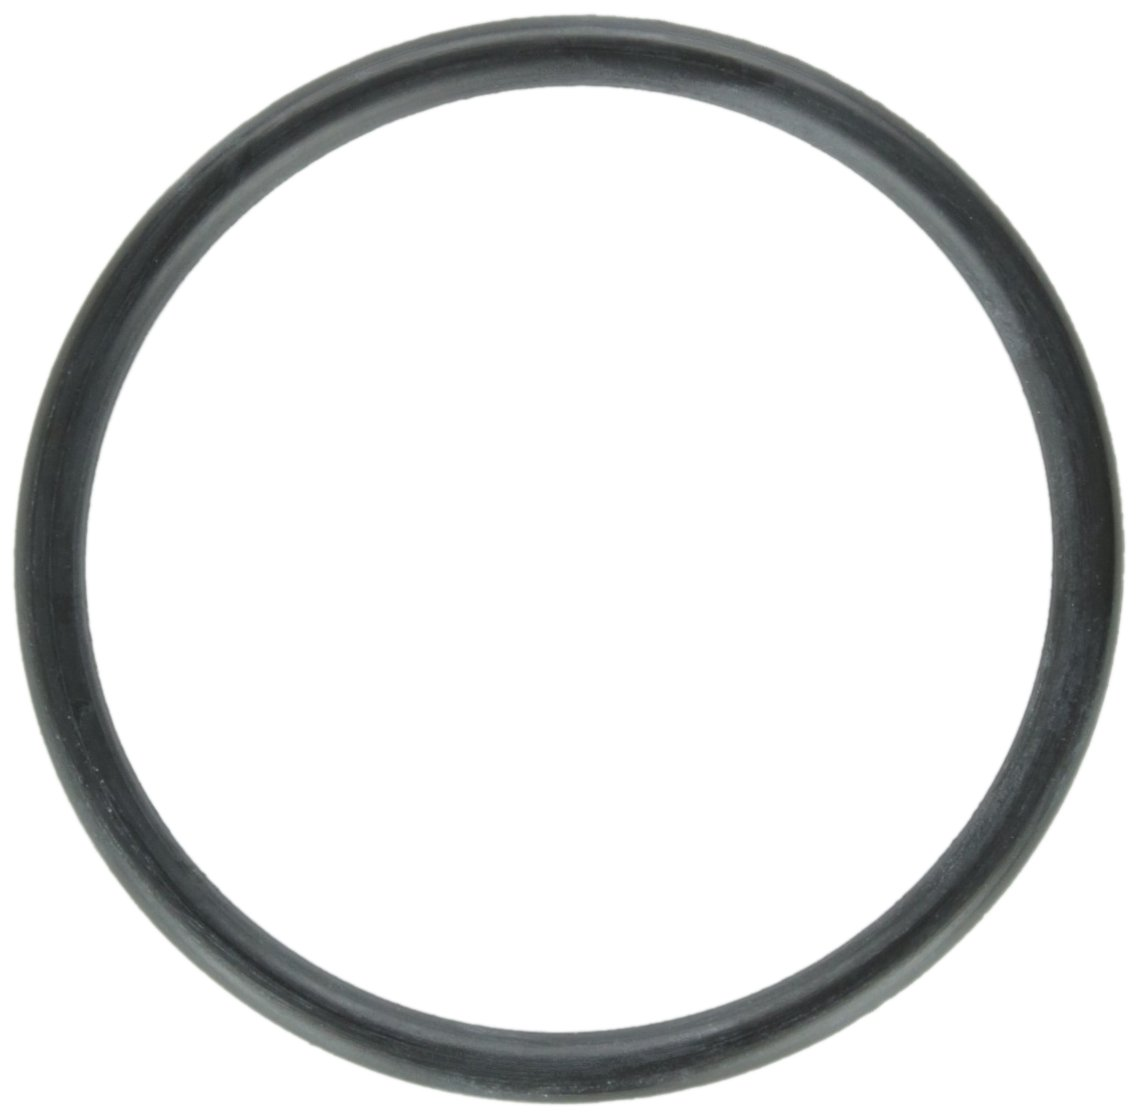 Aladdin O-287-9 O-Ring Replacement for select Pool and Spa Filters